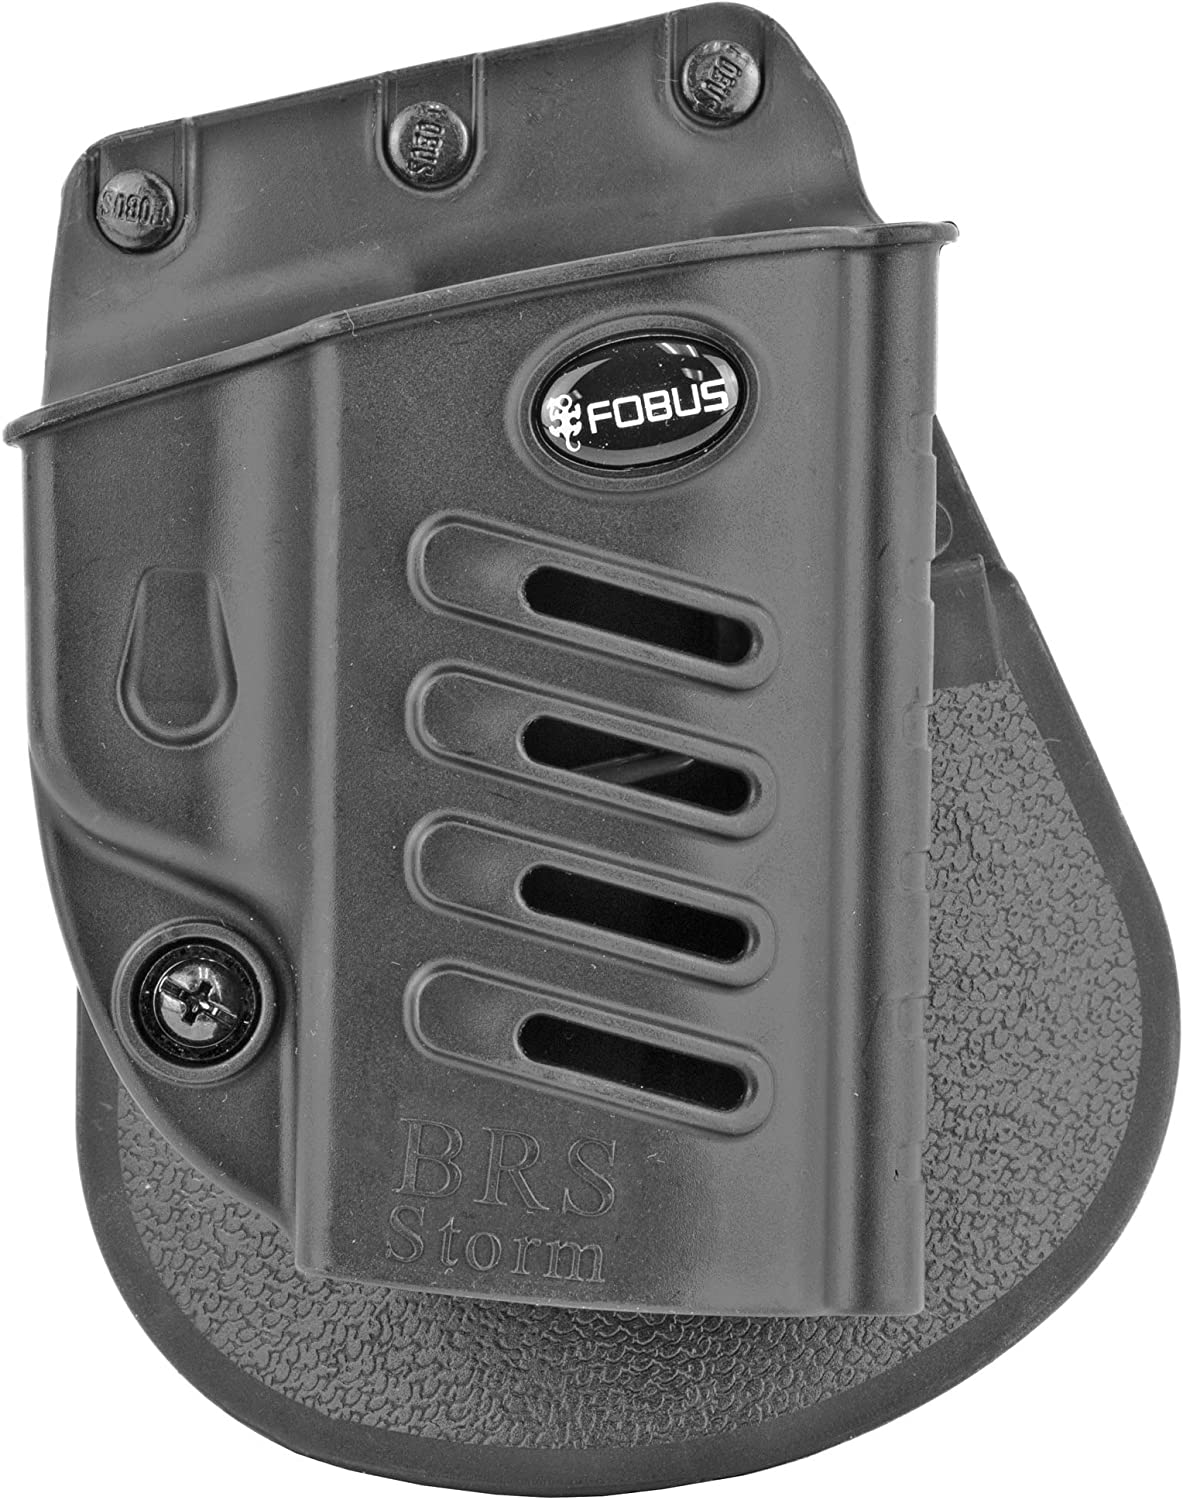 Fobus Standard Holster RH Paddle PX4Beretta PX4Storm (Compacto y tamaño Completo), Browning Pro 9, 40, FN/FNX P9/P40